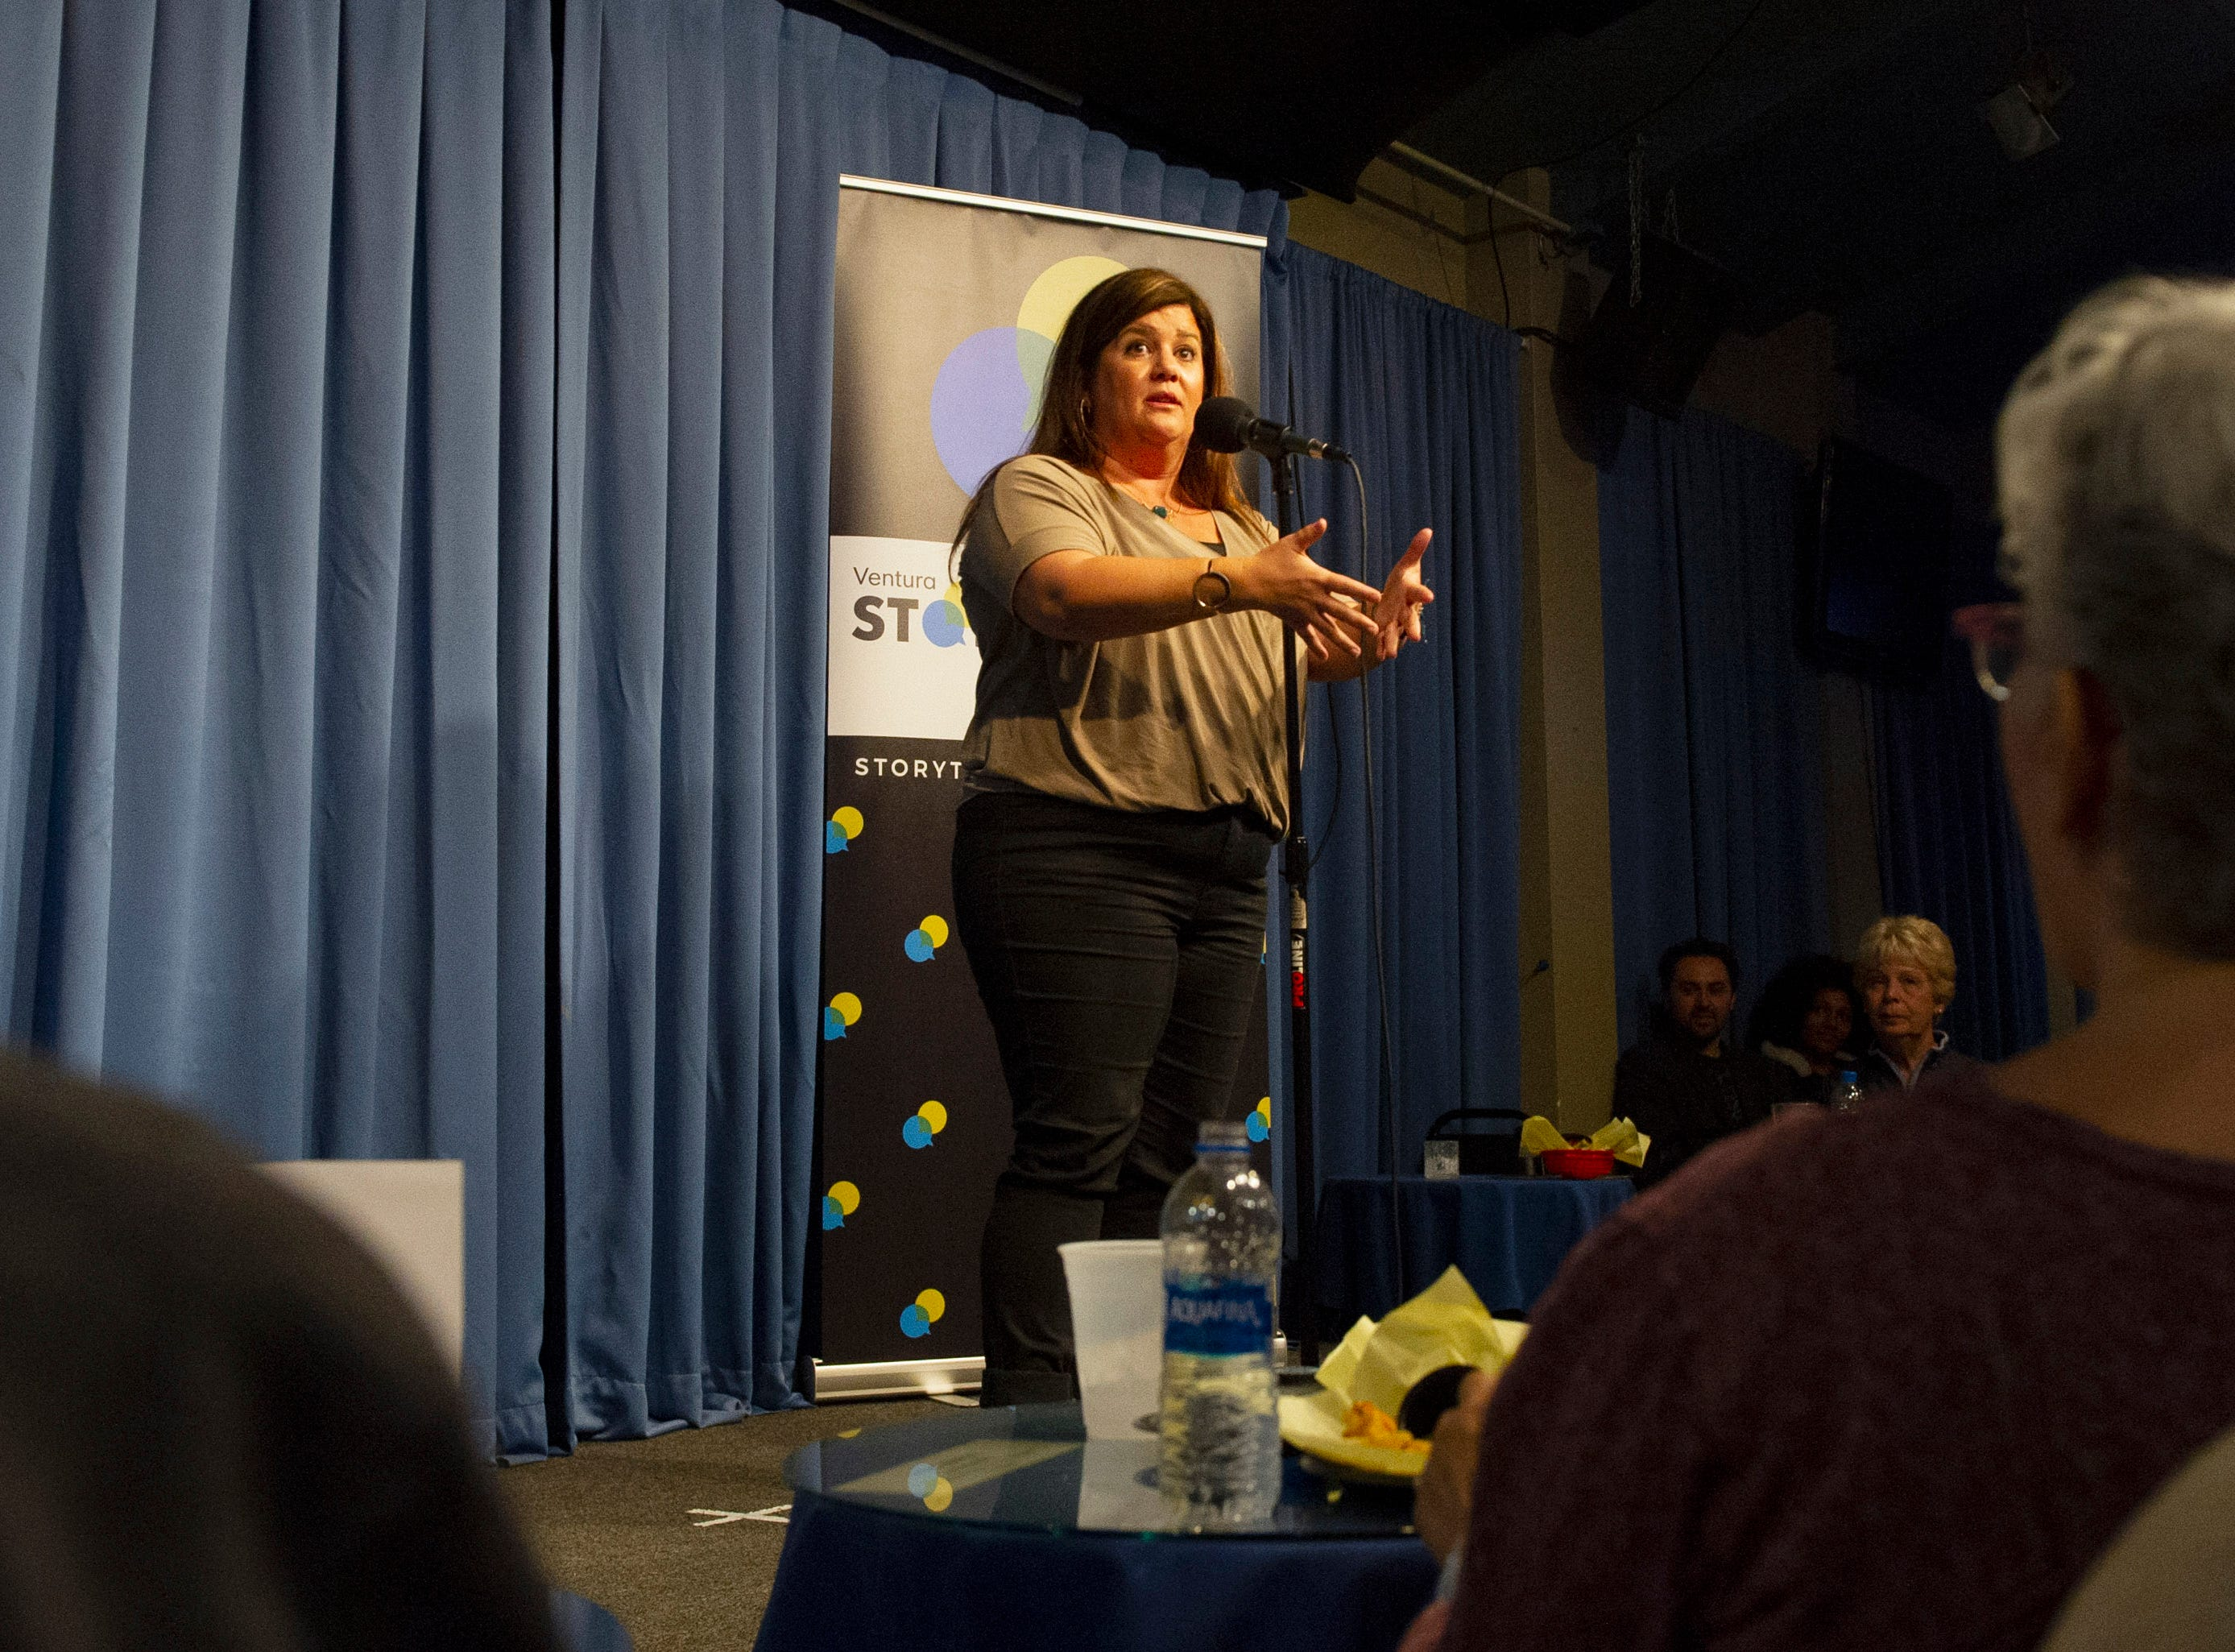 Erin Prewitt shares the story of finding love again after tragedy as part of the live Ventura Storytellers Project event at the Ventura Harbor Comedy Club on Wednesday.